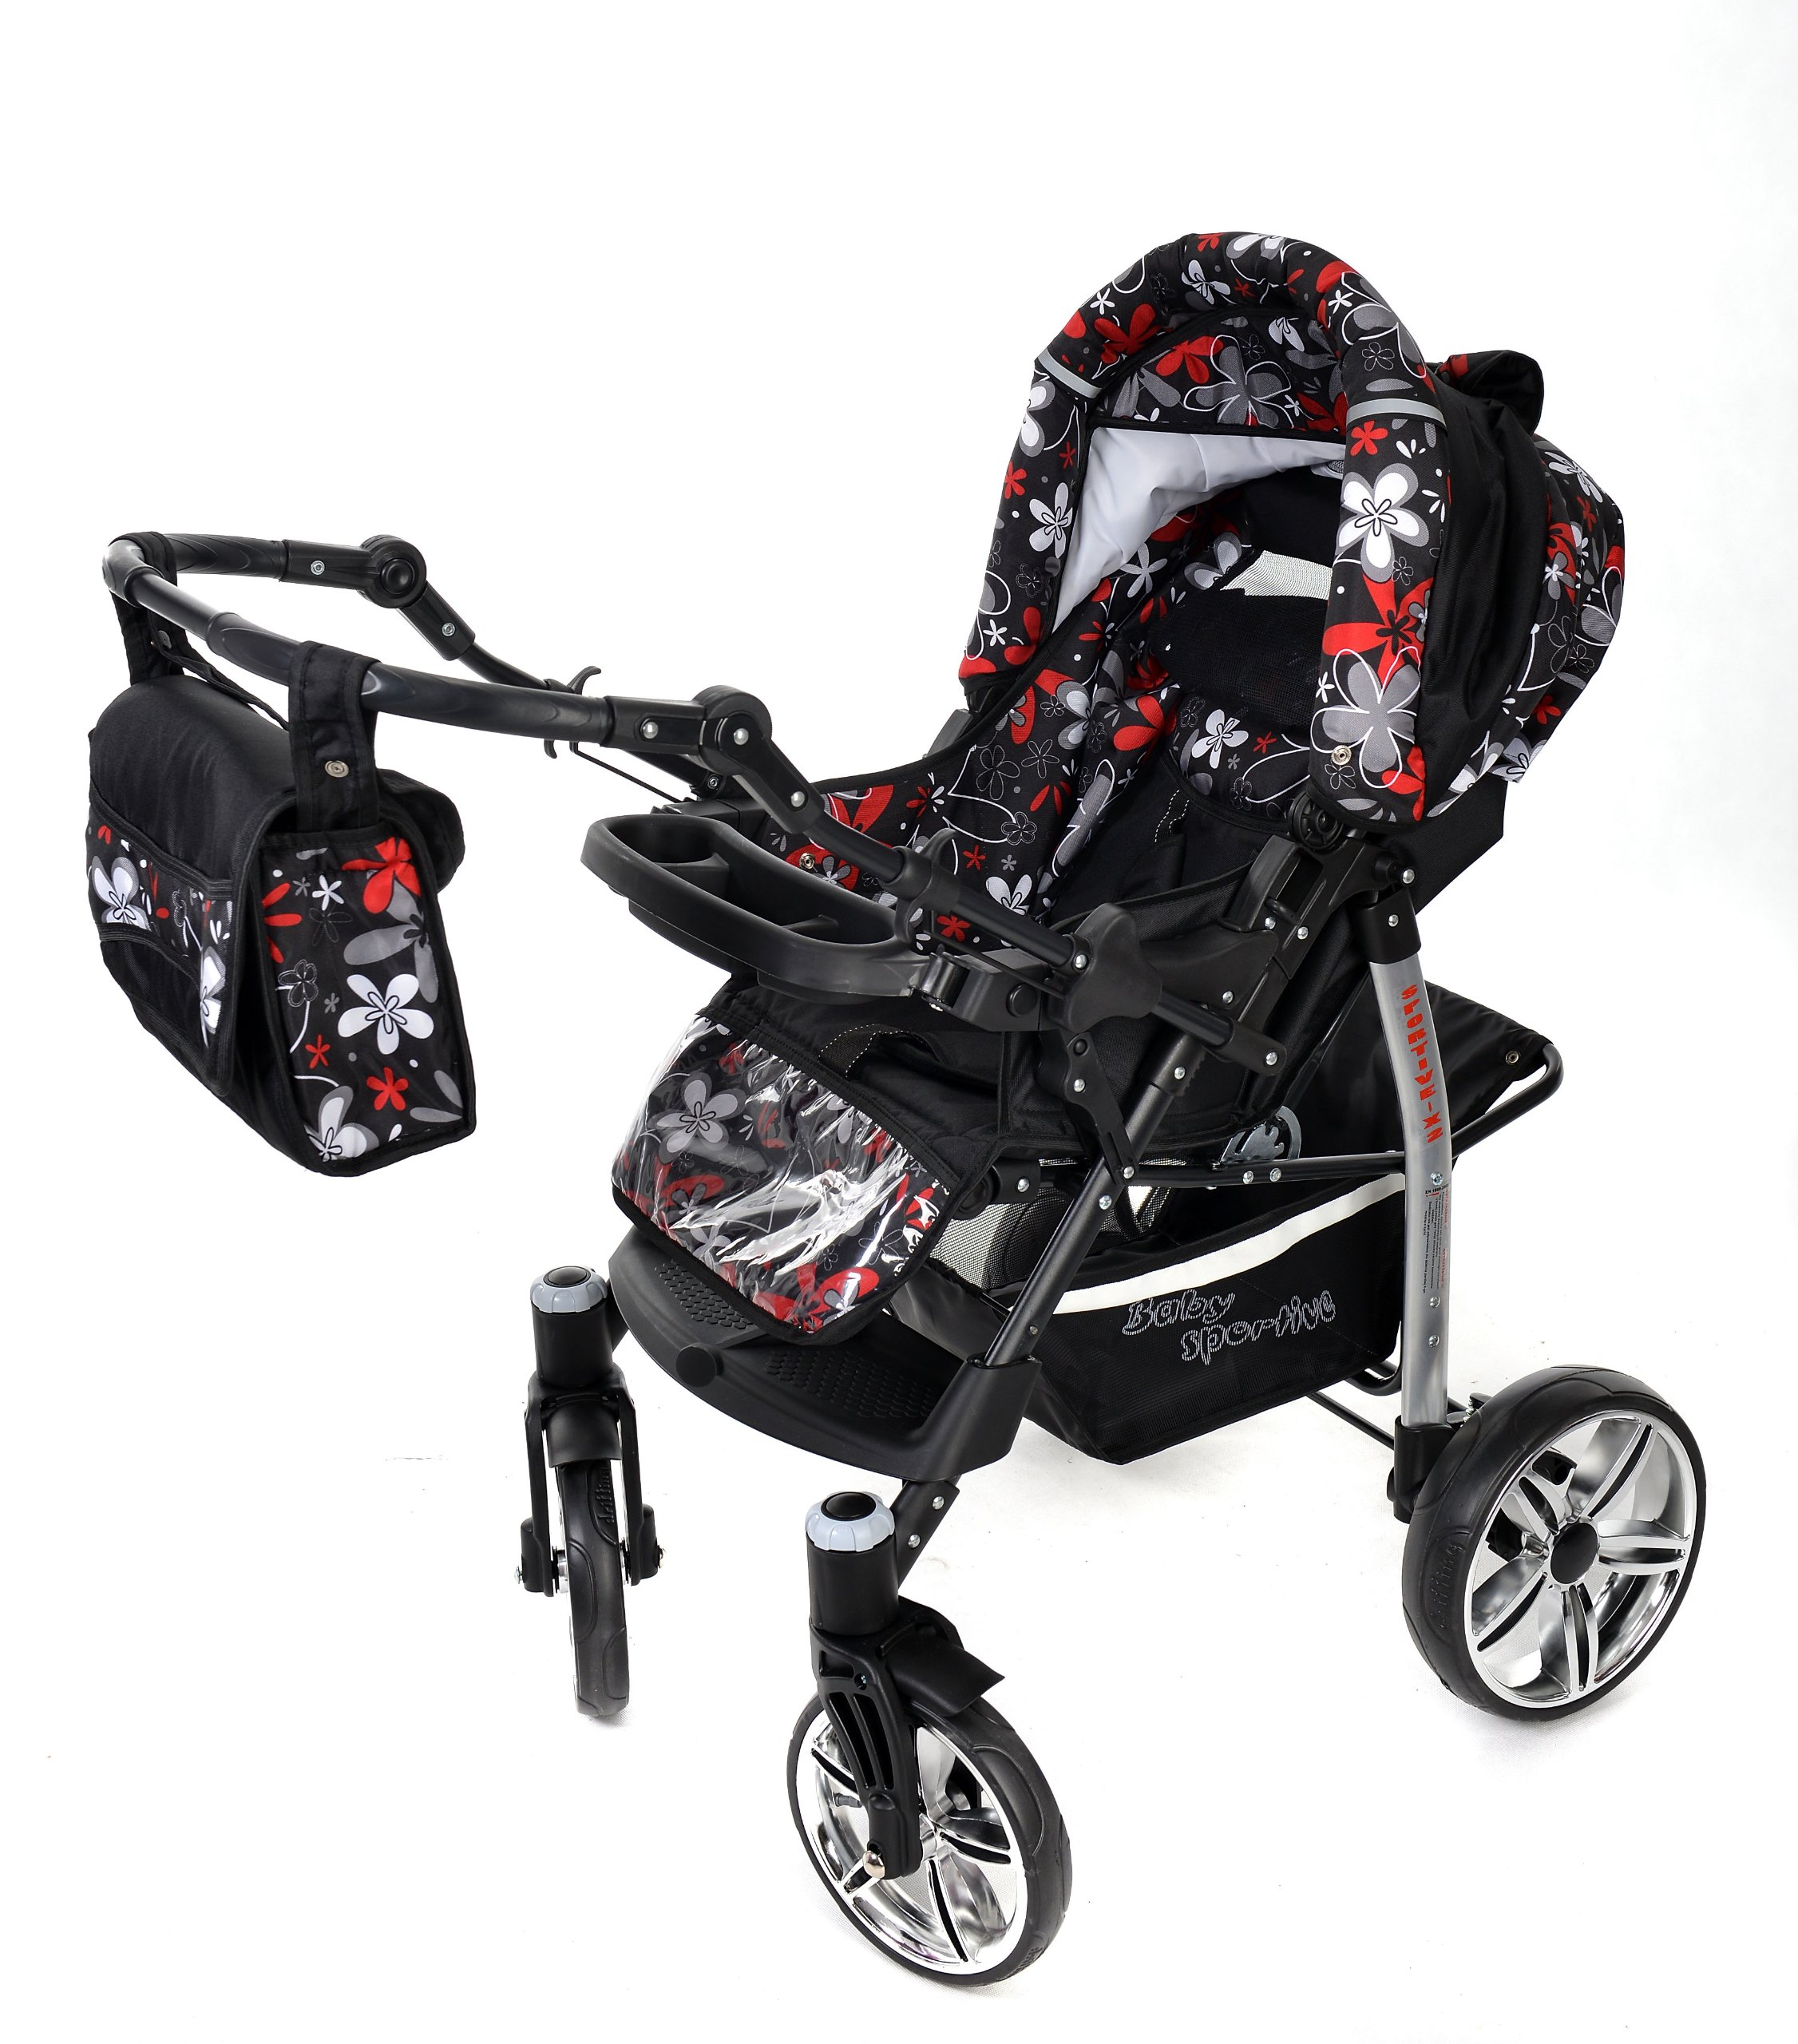 Sportive X2, 3-in-1 Travel System incl. Baby Pram with Swivel Wheels, Car Seat, Pushchair & Accessories (3-in-1 Travel System, Black & Small Flowers) Baby Sportive 3 in 1 Travel System All in One Set - Pram, Car Carrier Seat and Sport Buggy + Accessories: carrier bag, rain protection, mosquito net, changing mat, removable bottle holder and removable tray for your child's bits and pieces Suitable from birth, Easy Quick Folding System; Large storage basket; Turnable handle bar that allows to face or rear the drive direction; Quick release rear wheels for easy cleaning after muddy walks Front lockable 360o swivel wheels for manoeuvrability , Small sized when folded, fits into many small car trunks, Carry-cot with a removable hood, Reflective elements for better visibility 4